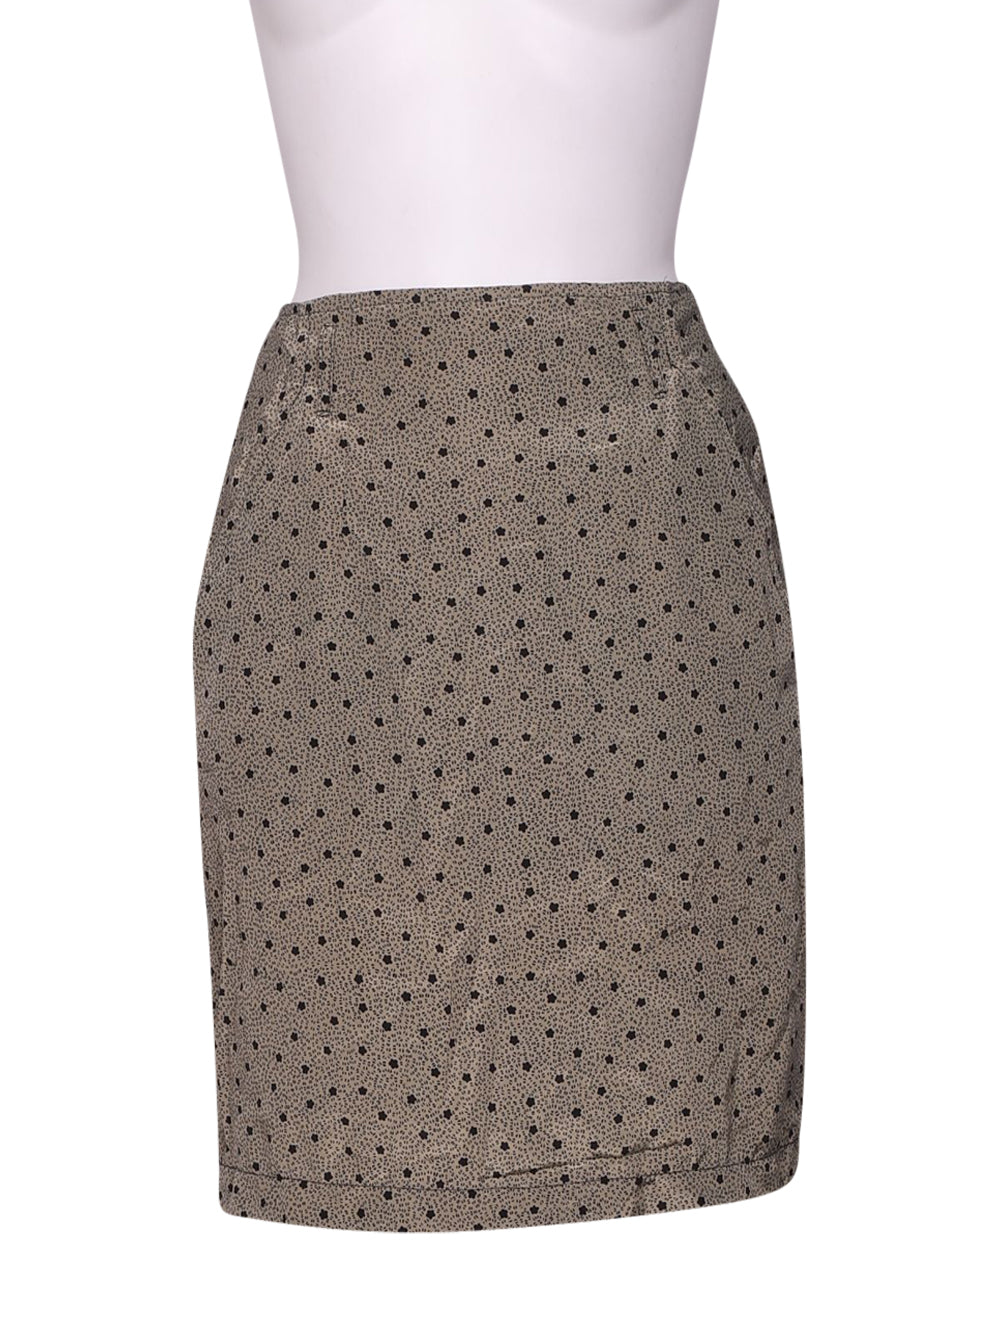 Front photo of Preloved blacky dress Beige Woman's skirt - size 8/S